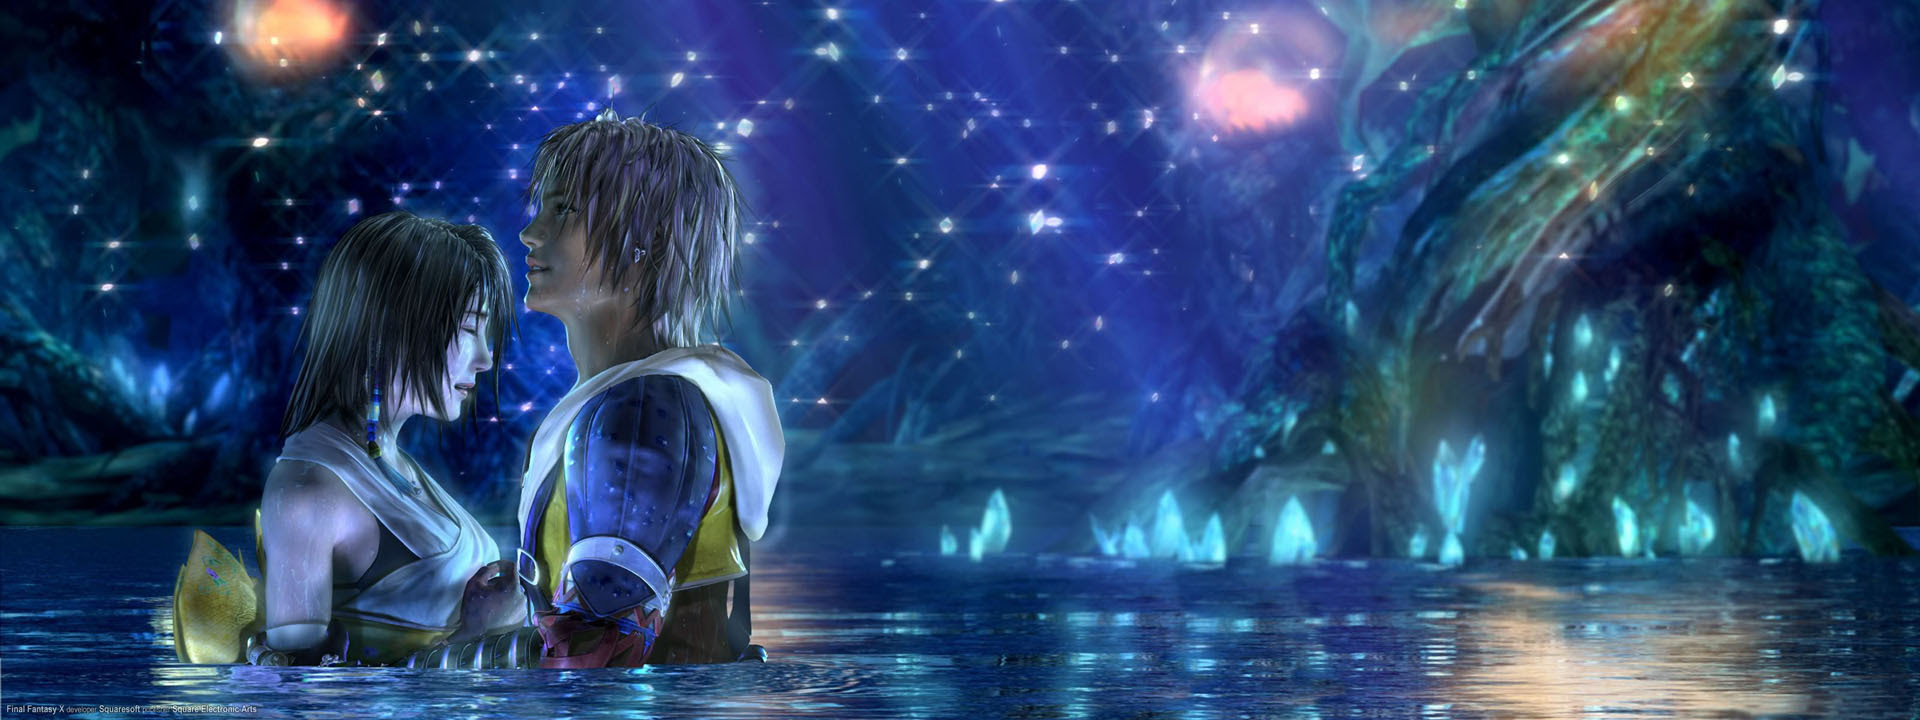 Final Fantasy Dual Screen Wallpaper Anime Top Wallpaper